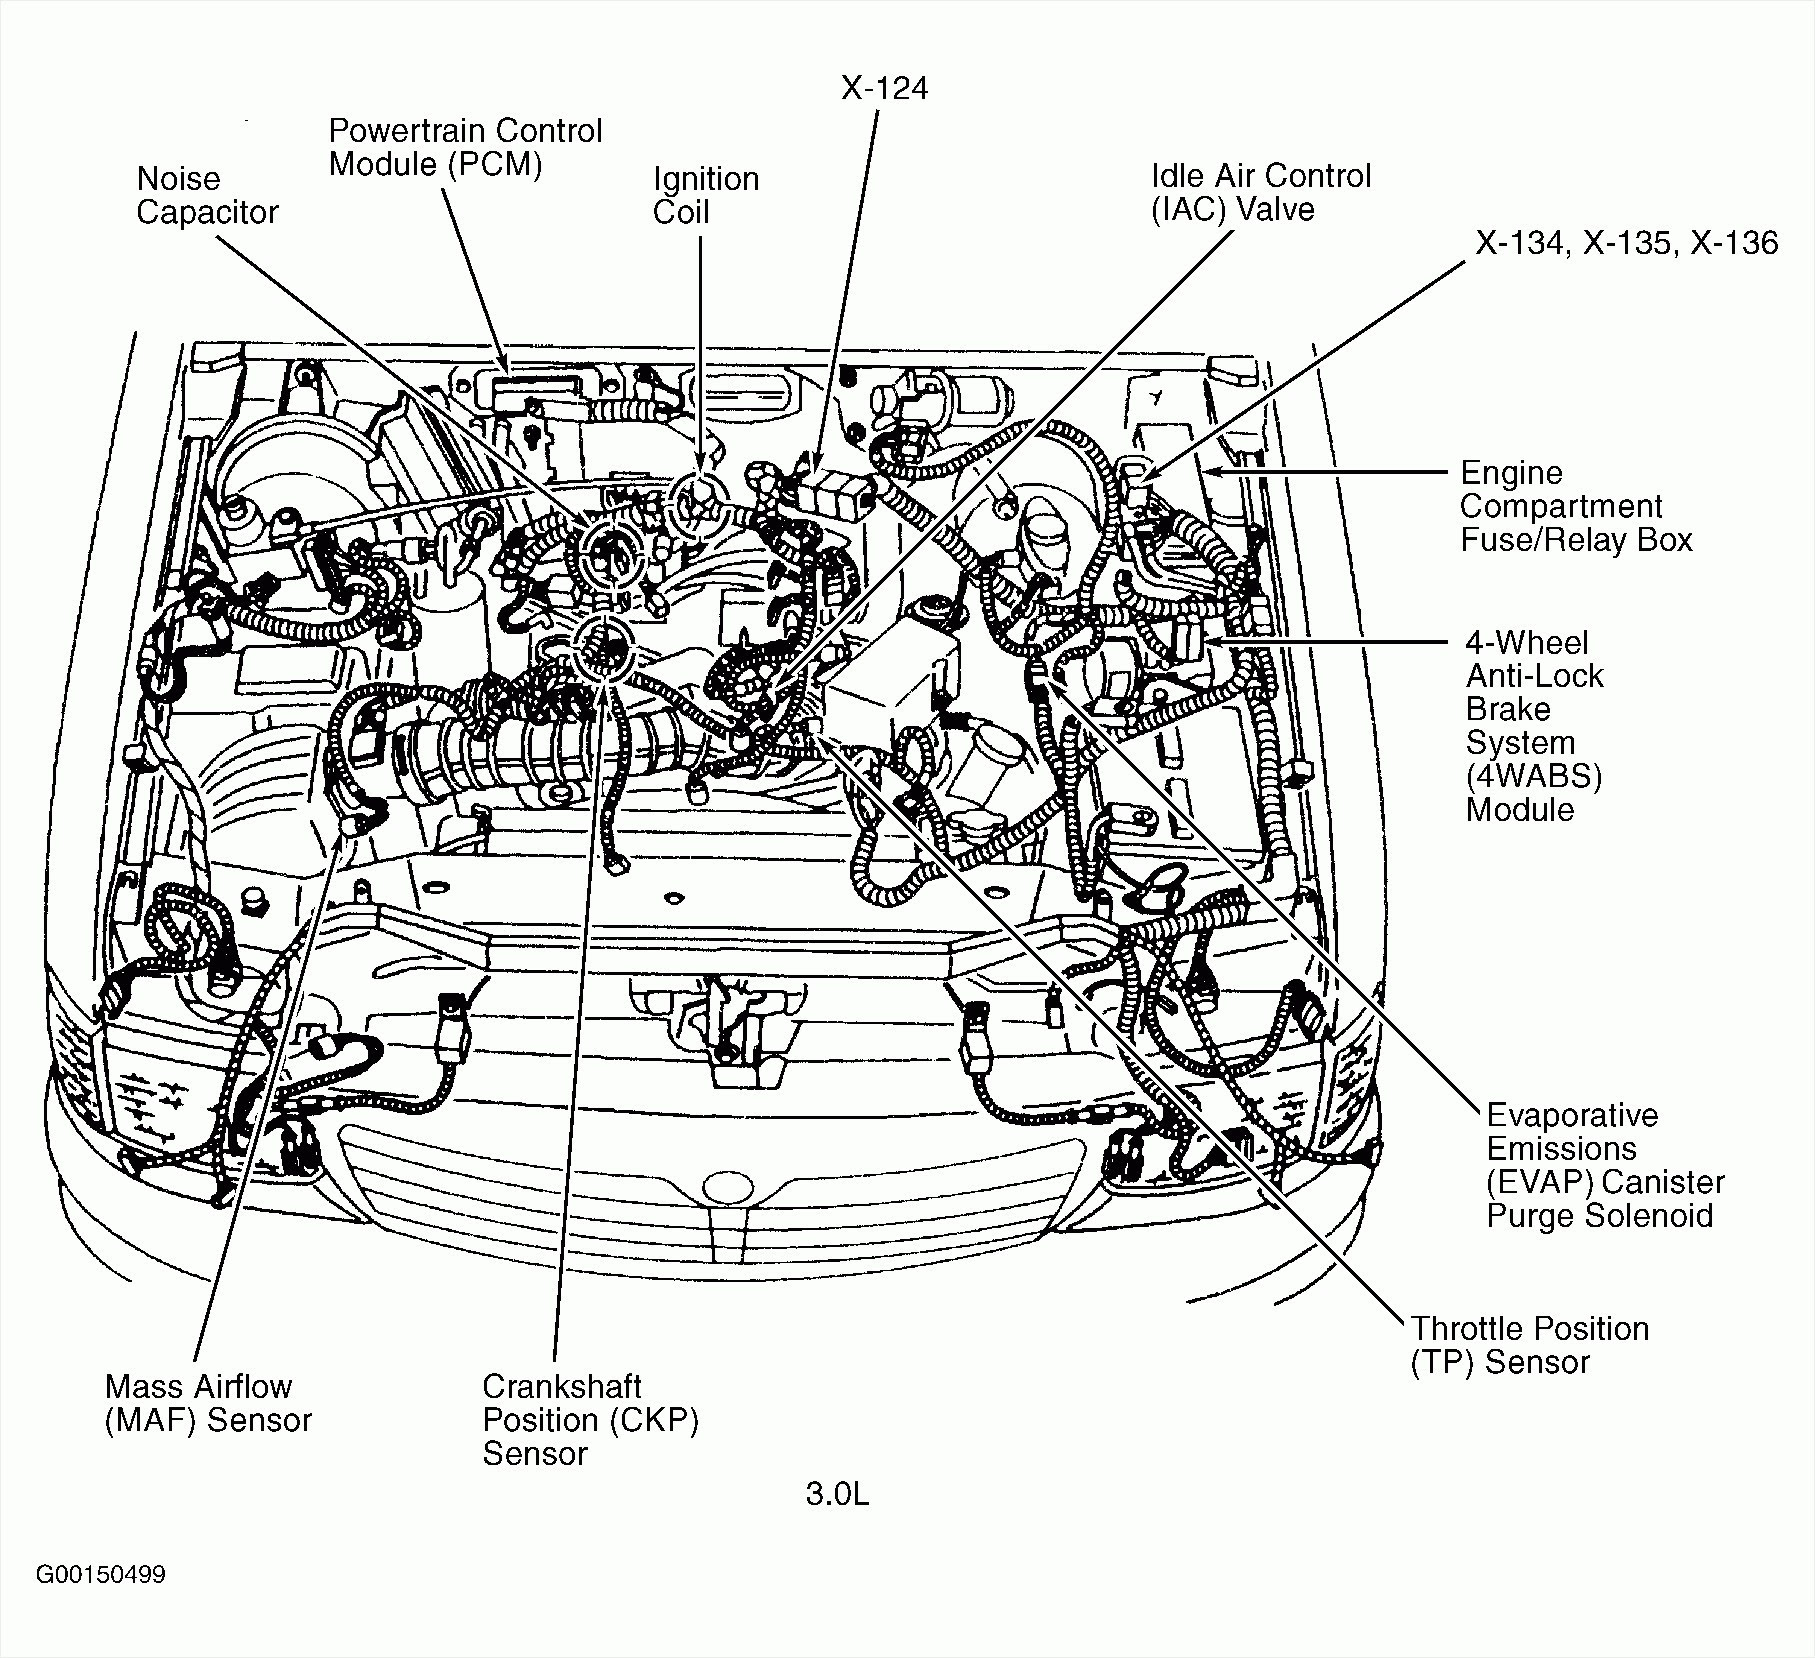 Custom 2002 Buick Lesabre Engine Diagram Wiring Diagram Schema Forge Shape A Forge Shape A Atmosphereconcept It